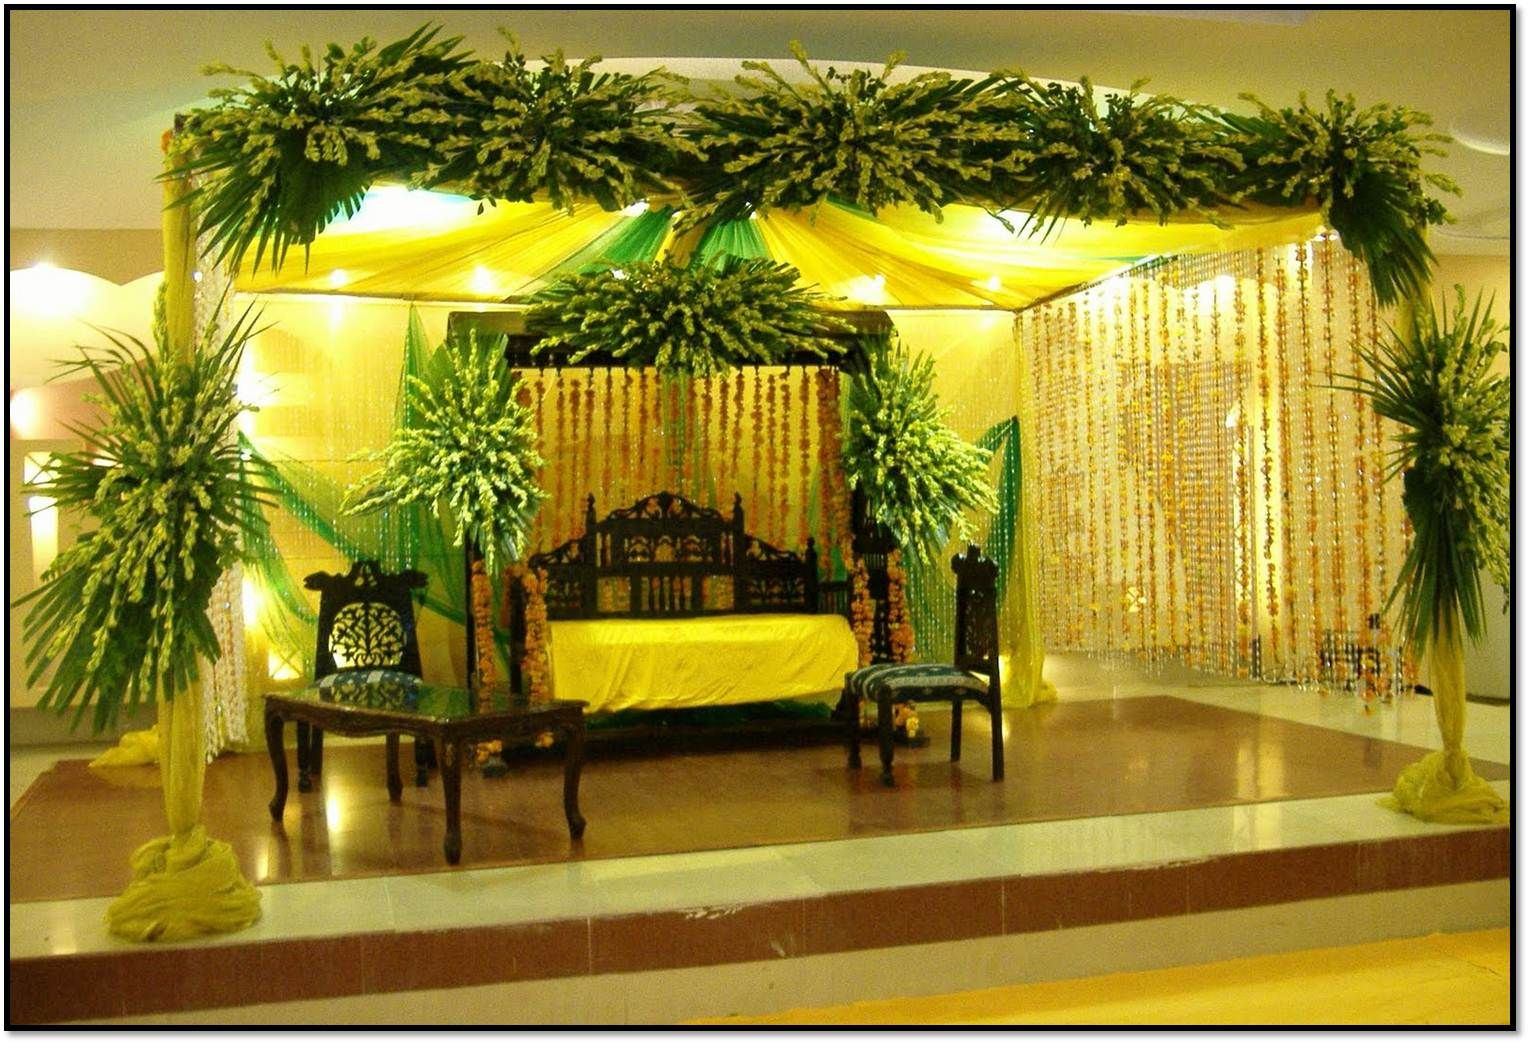 wedding themes | Decorations of church for wedding decorating ...